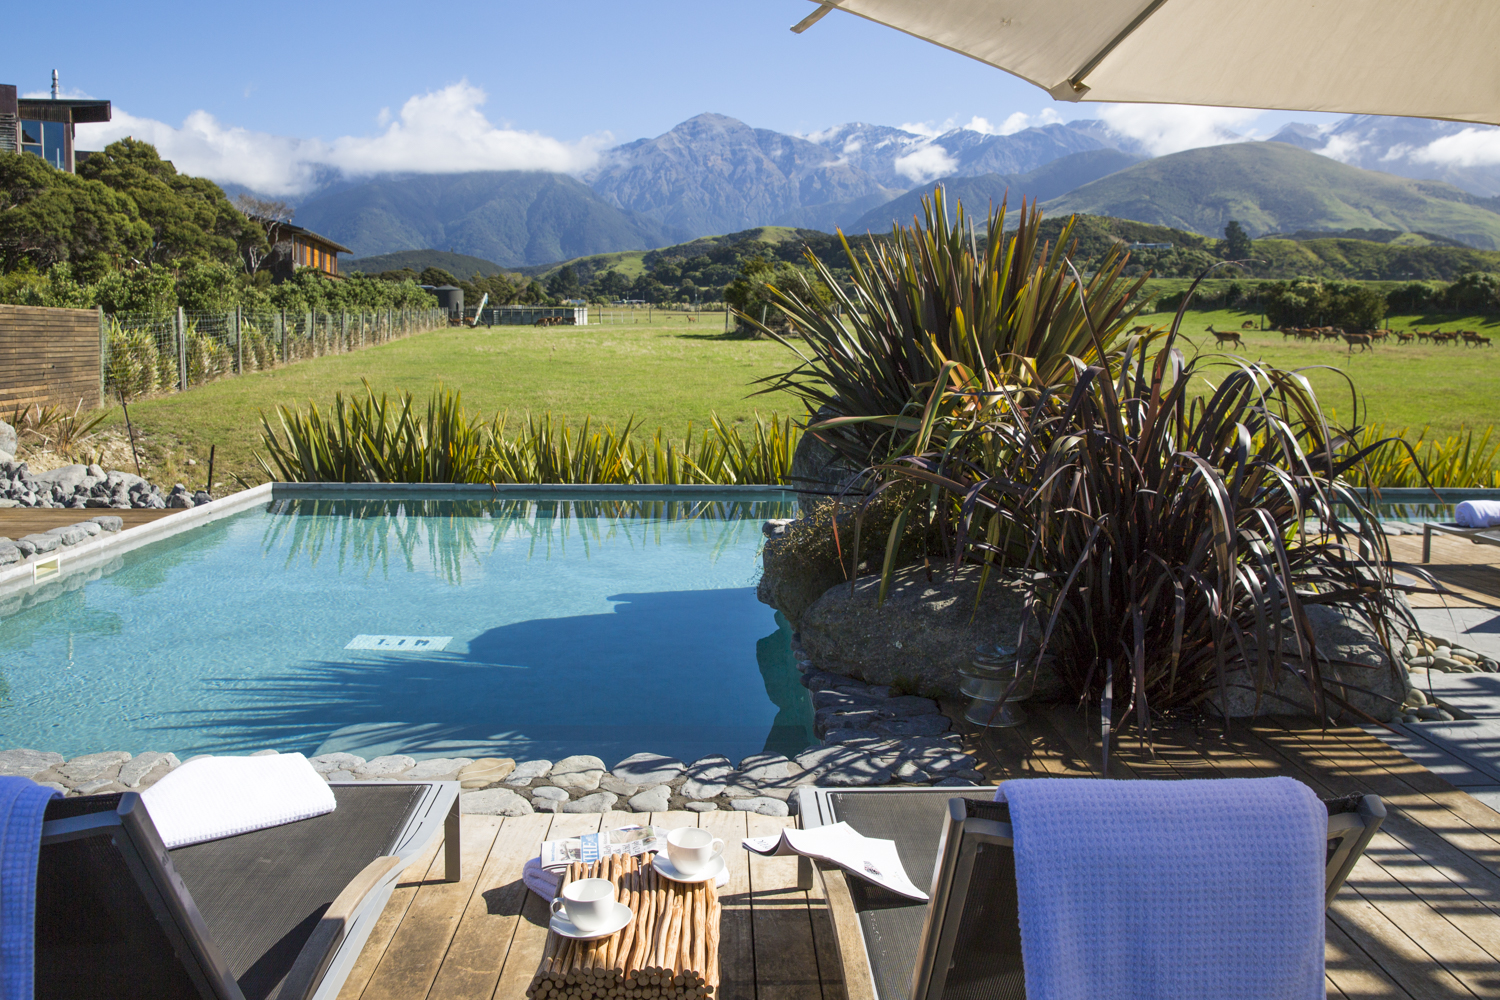 Manakau, the highest peak in the Kaikoura Seaward range is 2,610 meters and only 12km from the coast.